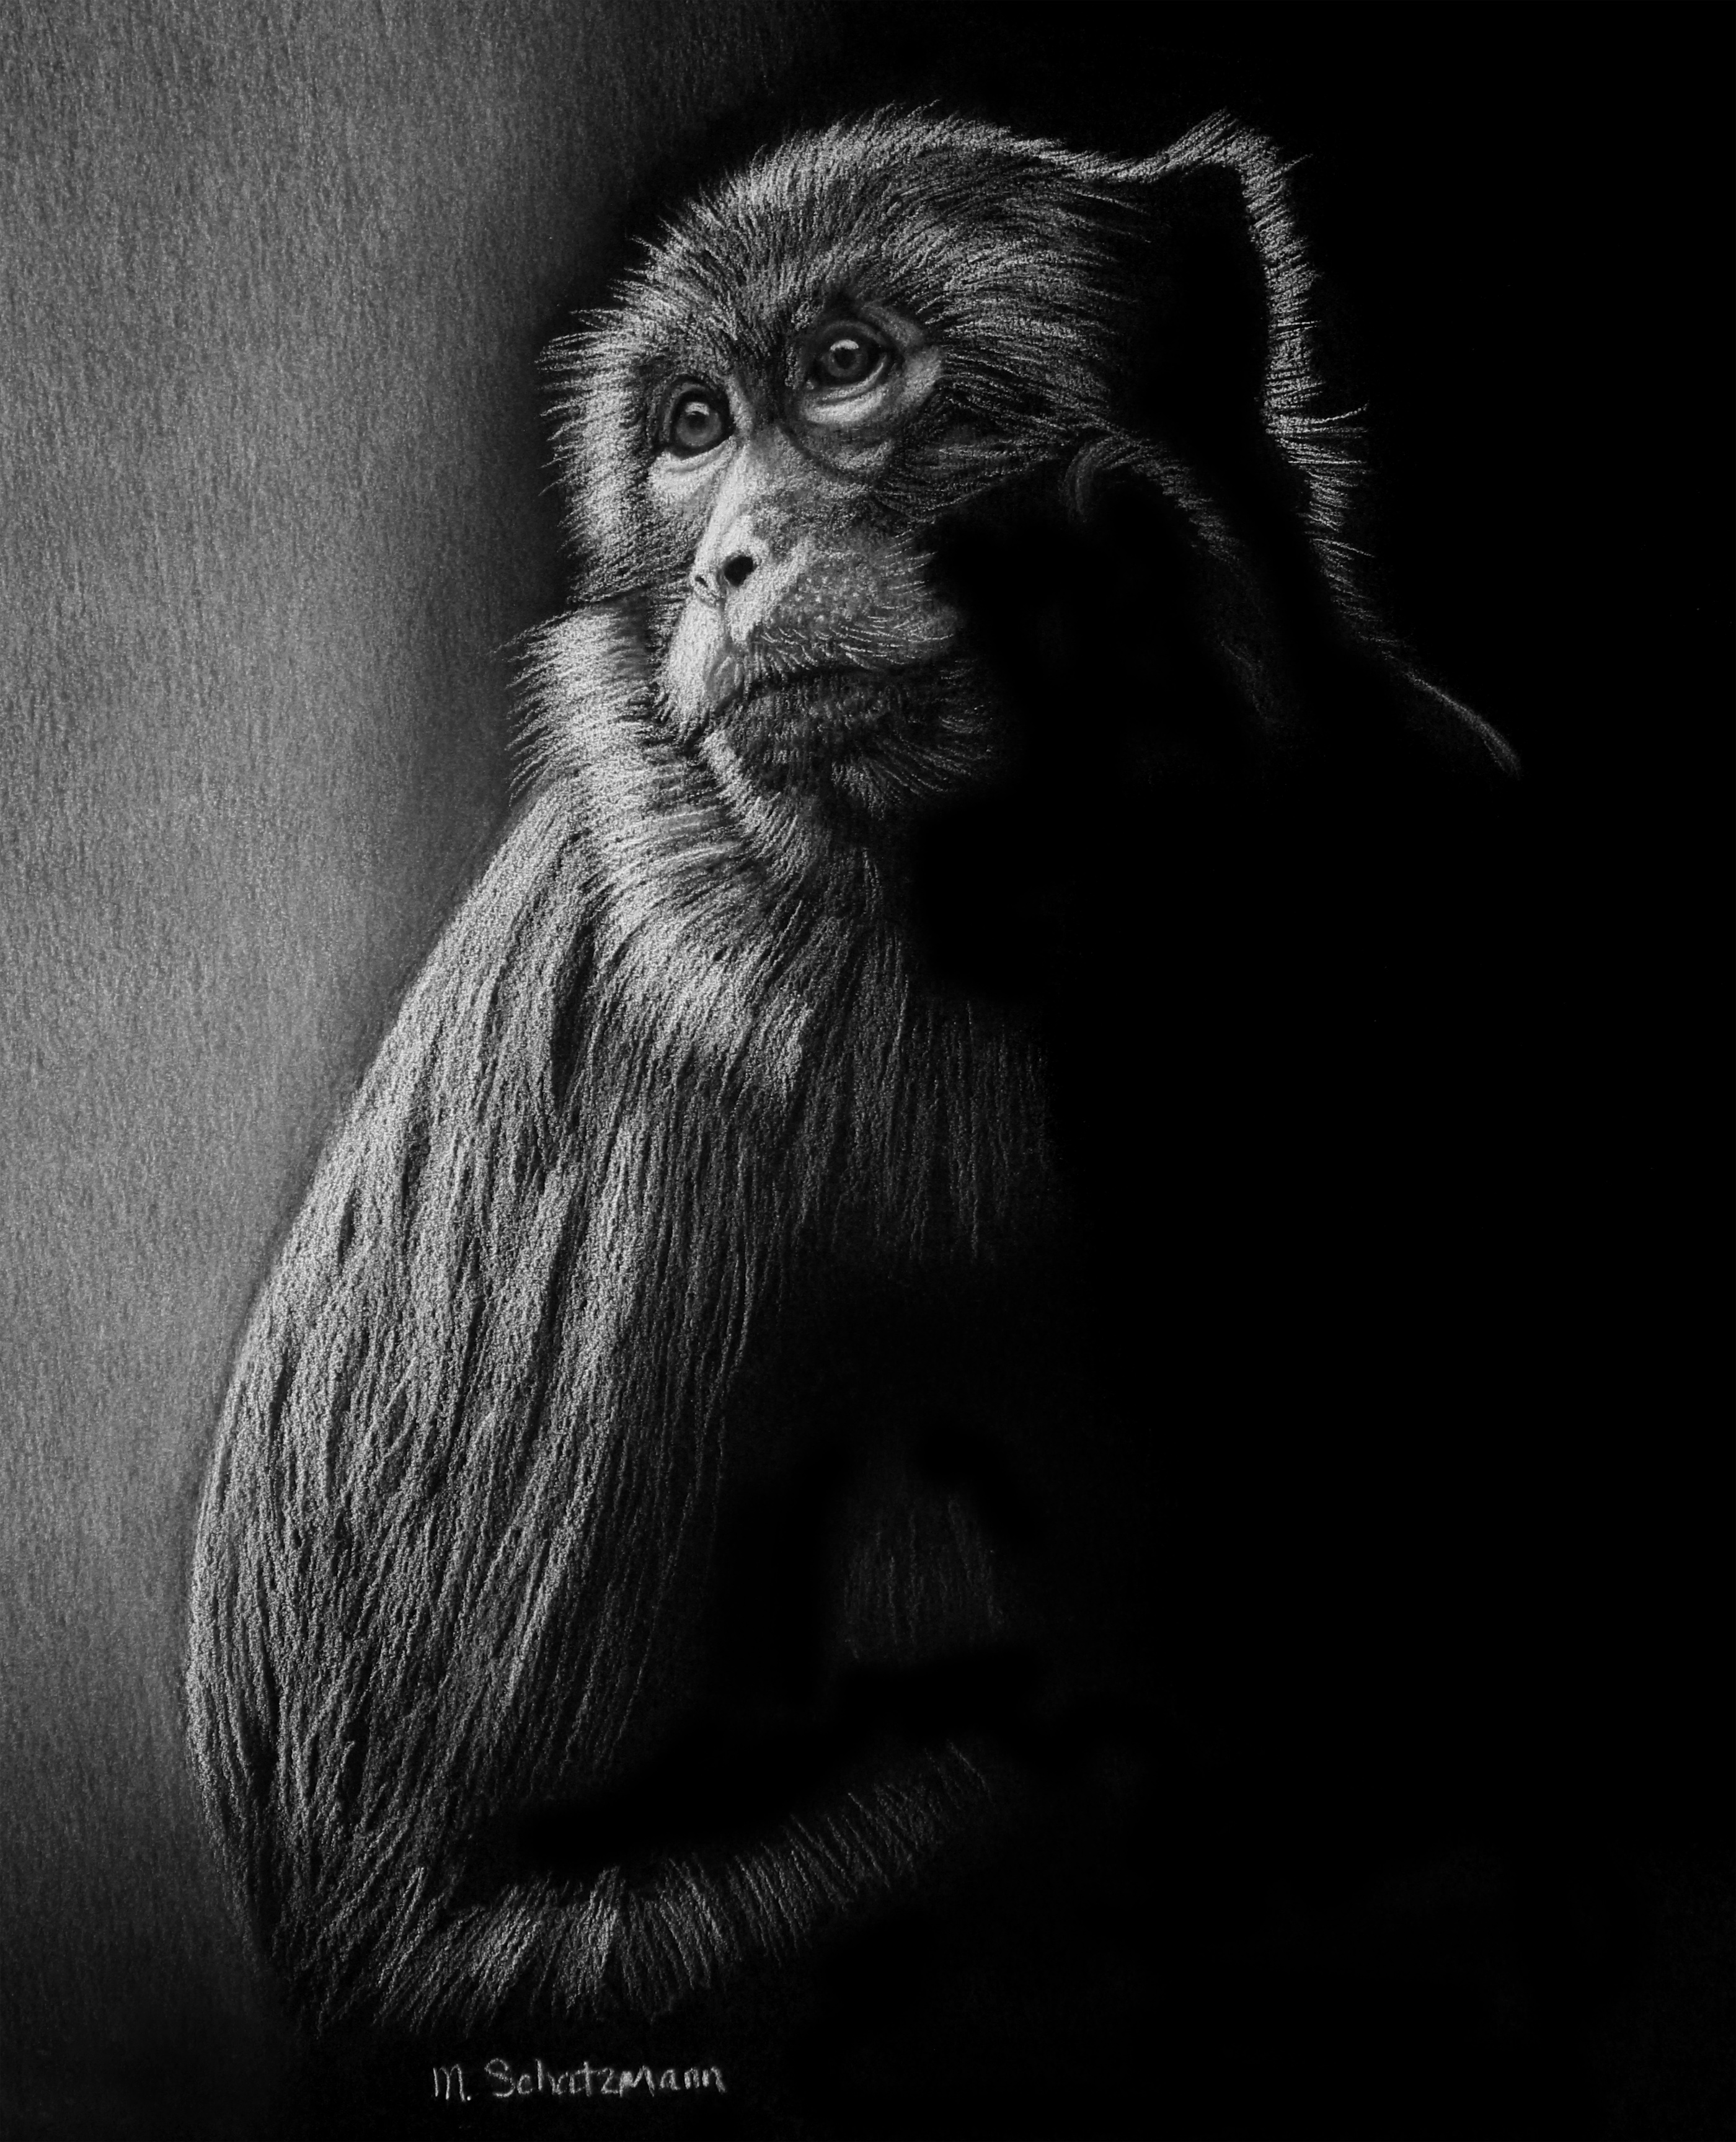 Realistic Pencil Drawings - Macaque Monkey